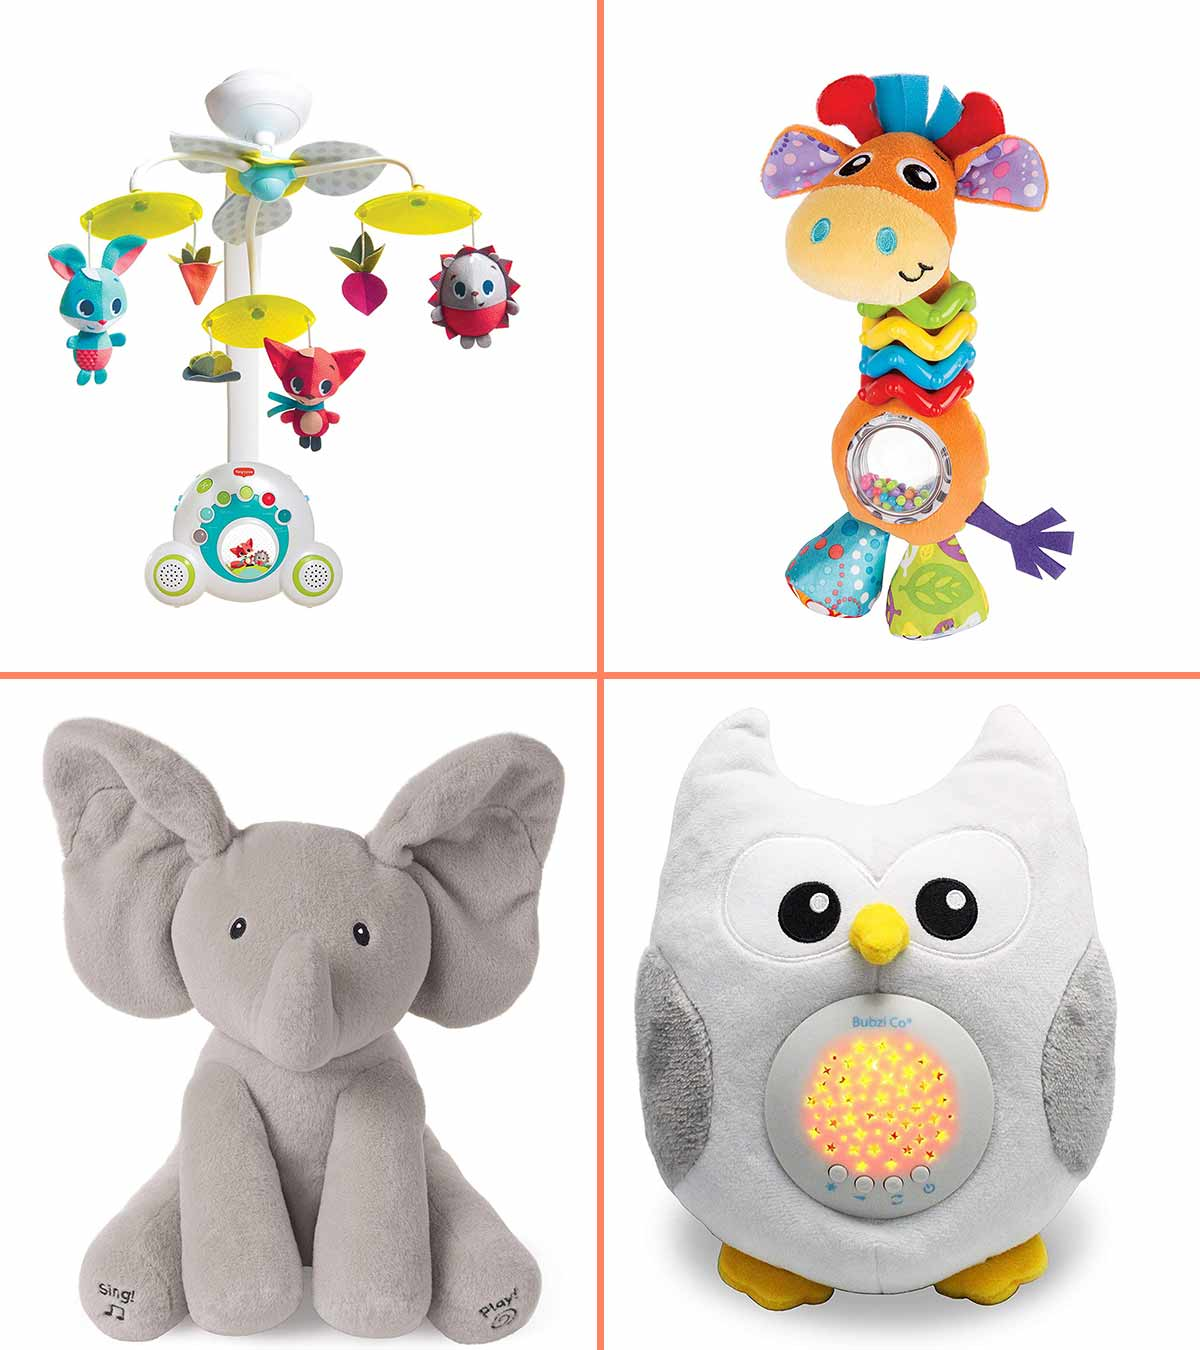 Baby Spiral Rattle Toy Plush Soft Toy Newborn Crib Toy Baby Infant Toys Gift C